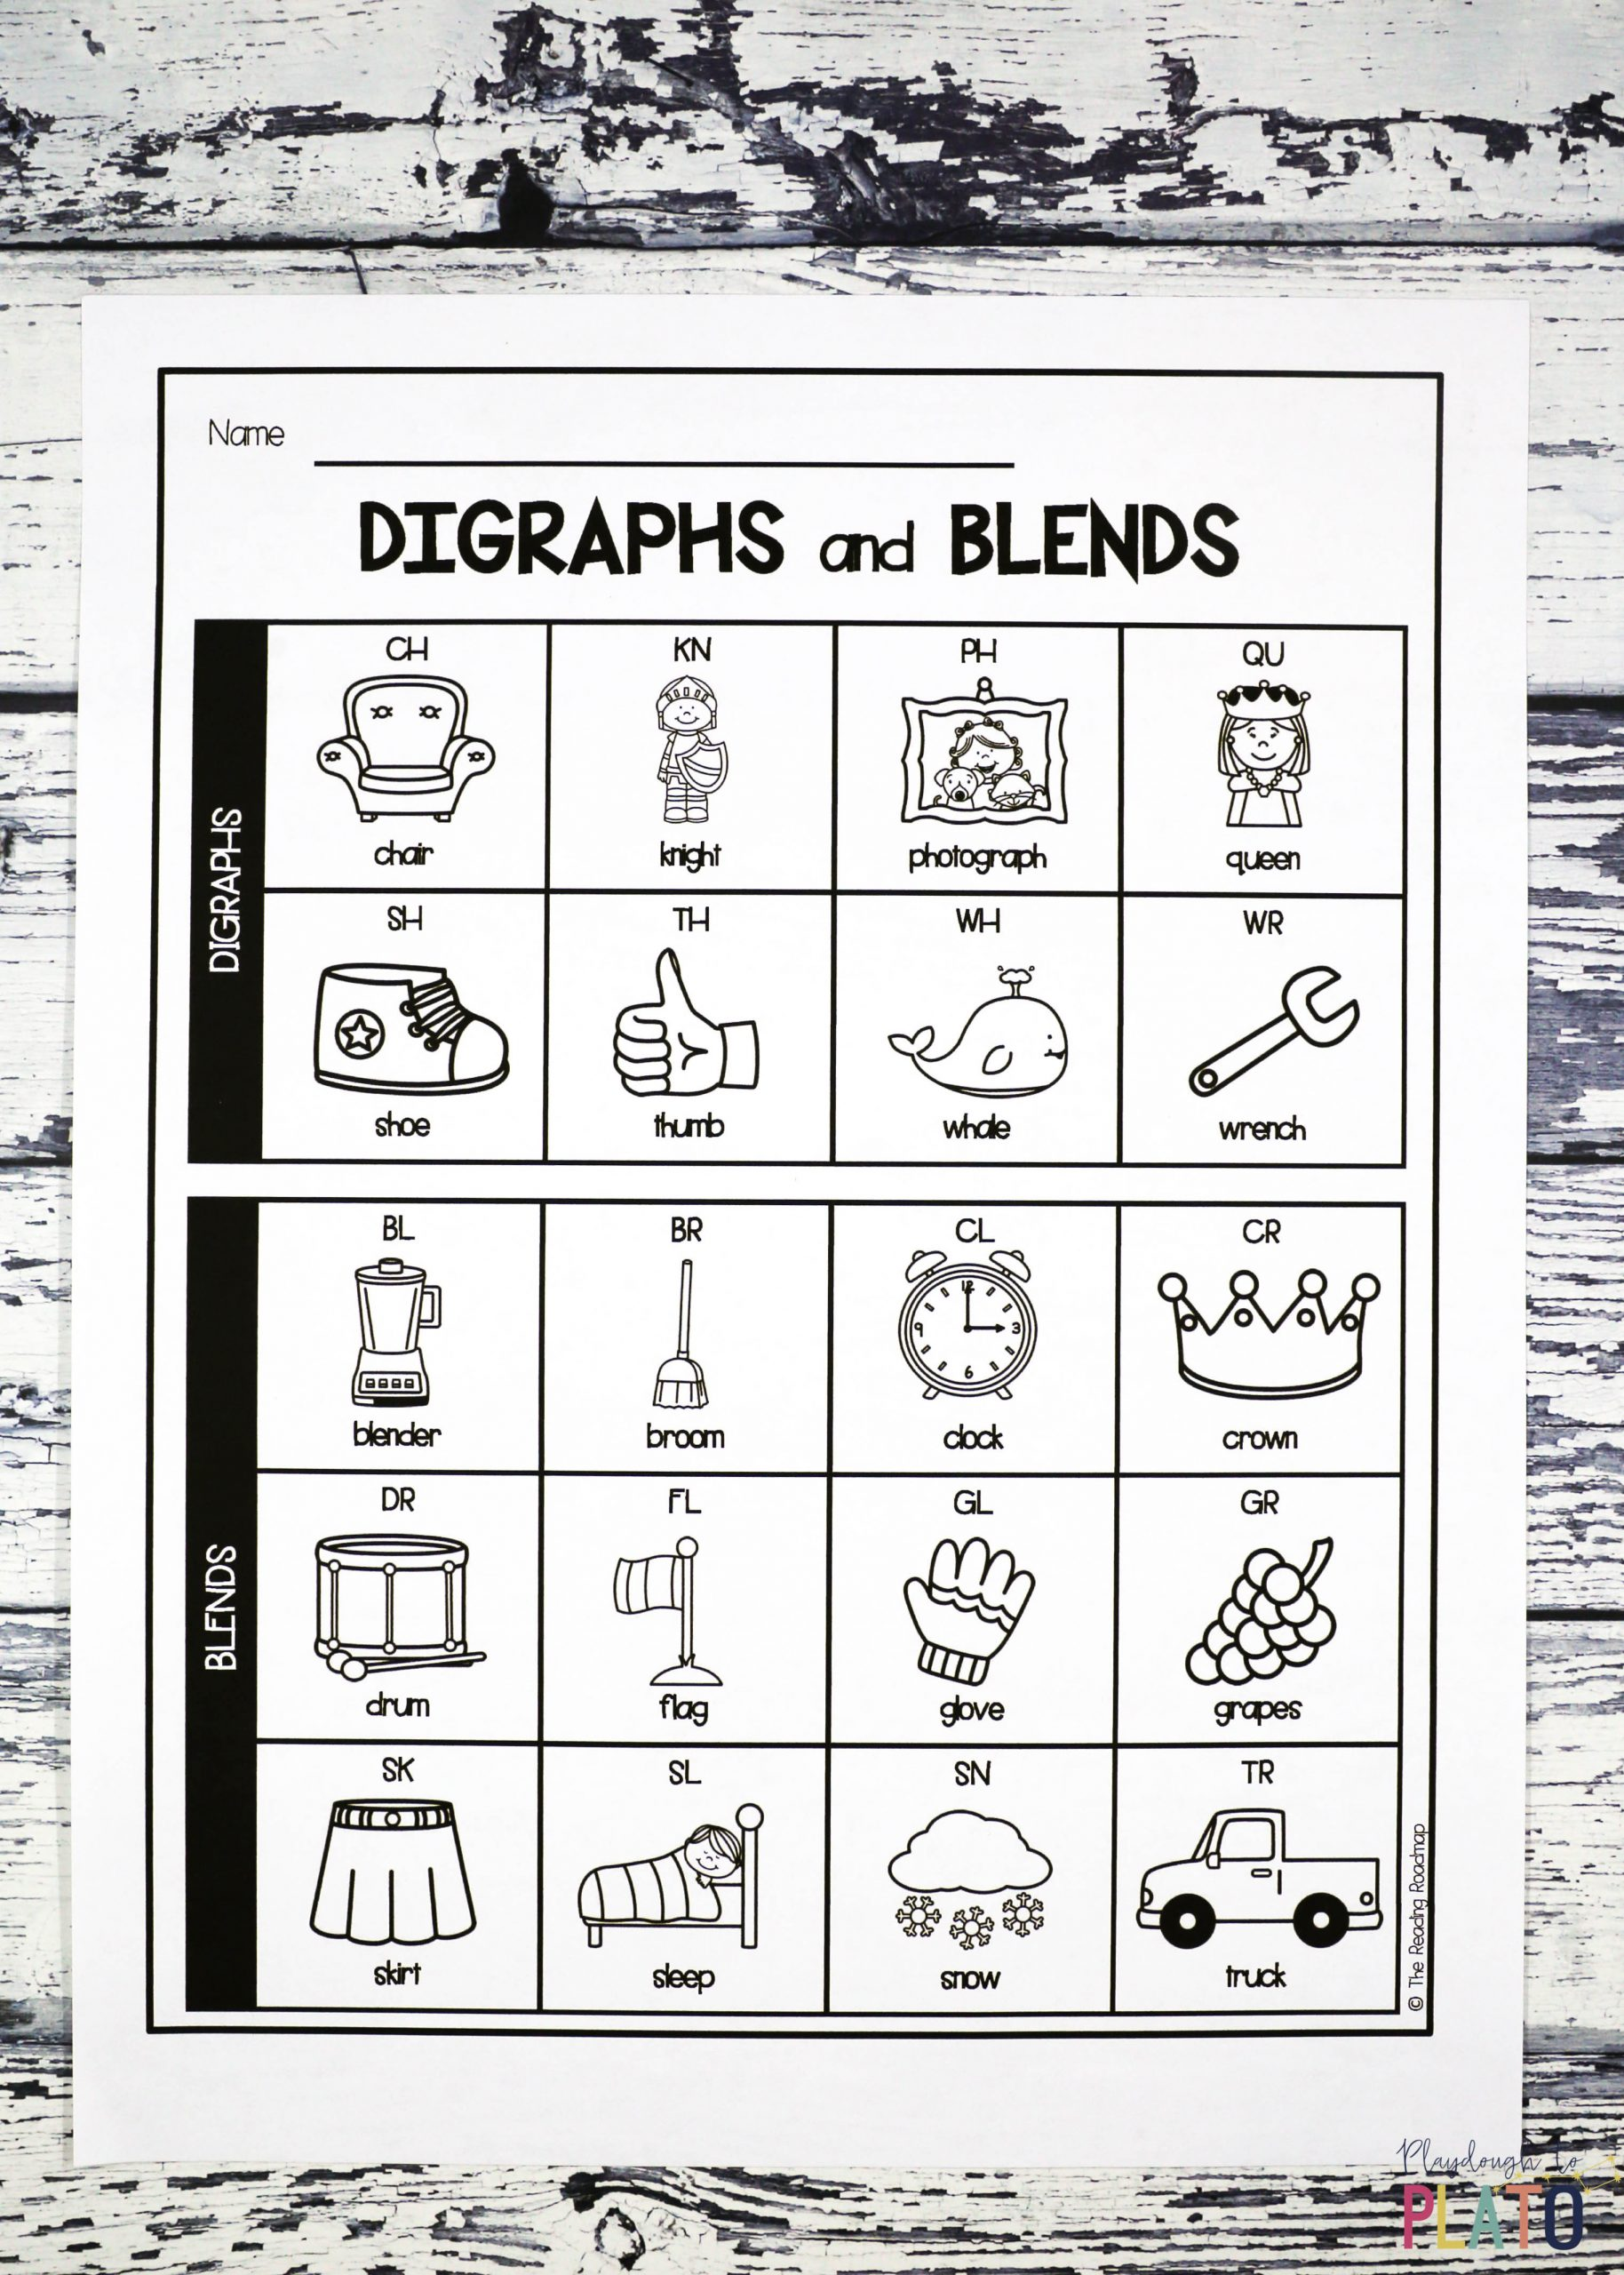 Blends Worksheets for 1st Grade Digraph and Blend Chart Playdough to Plato